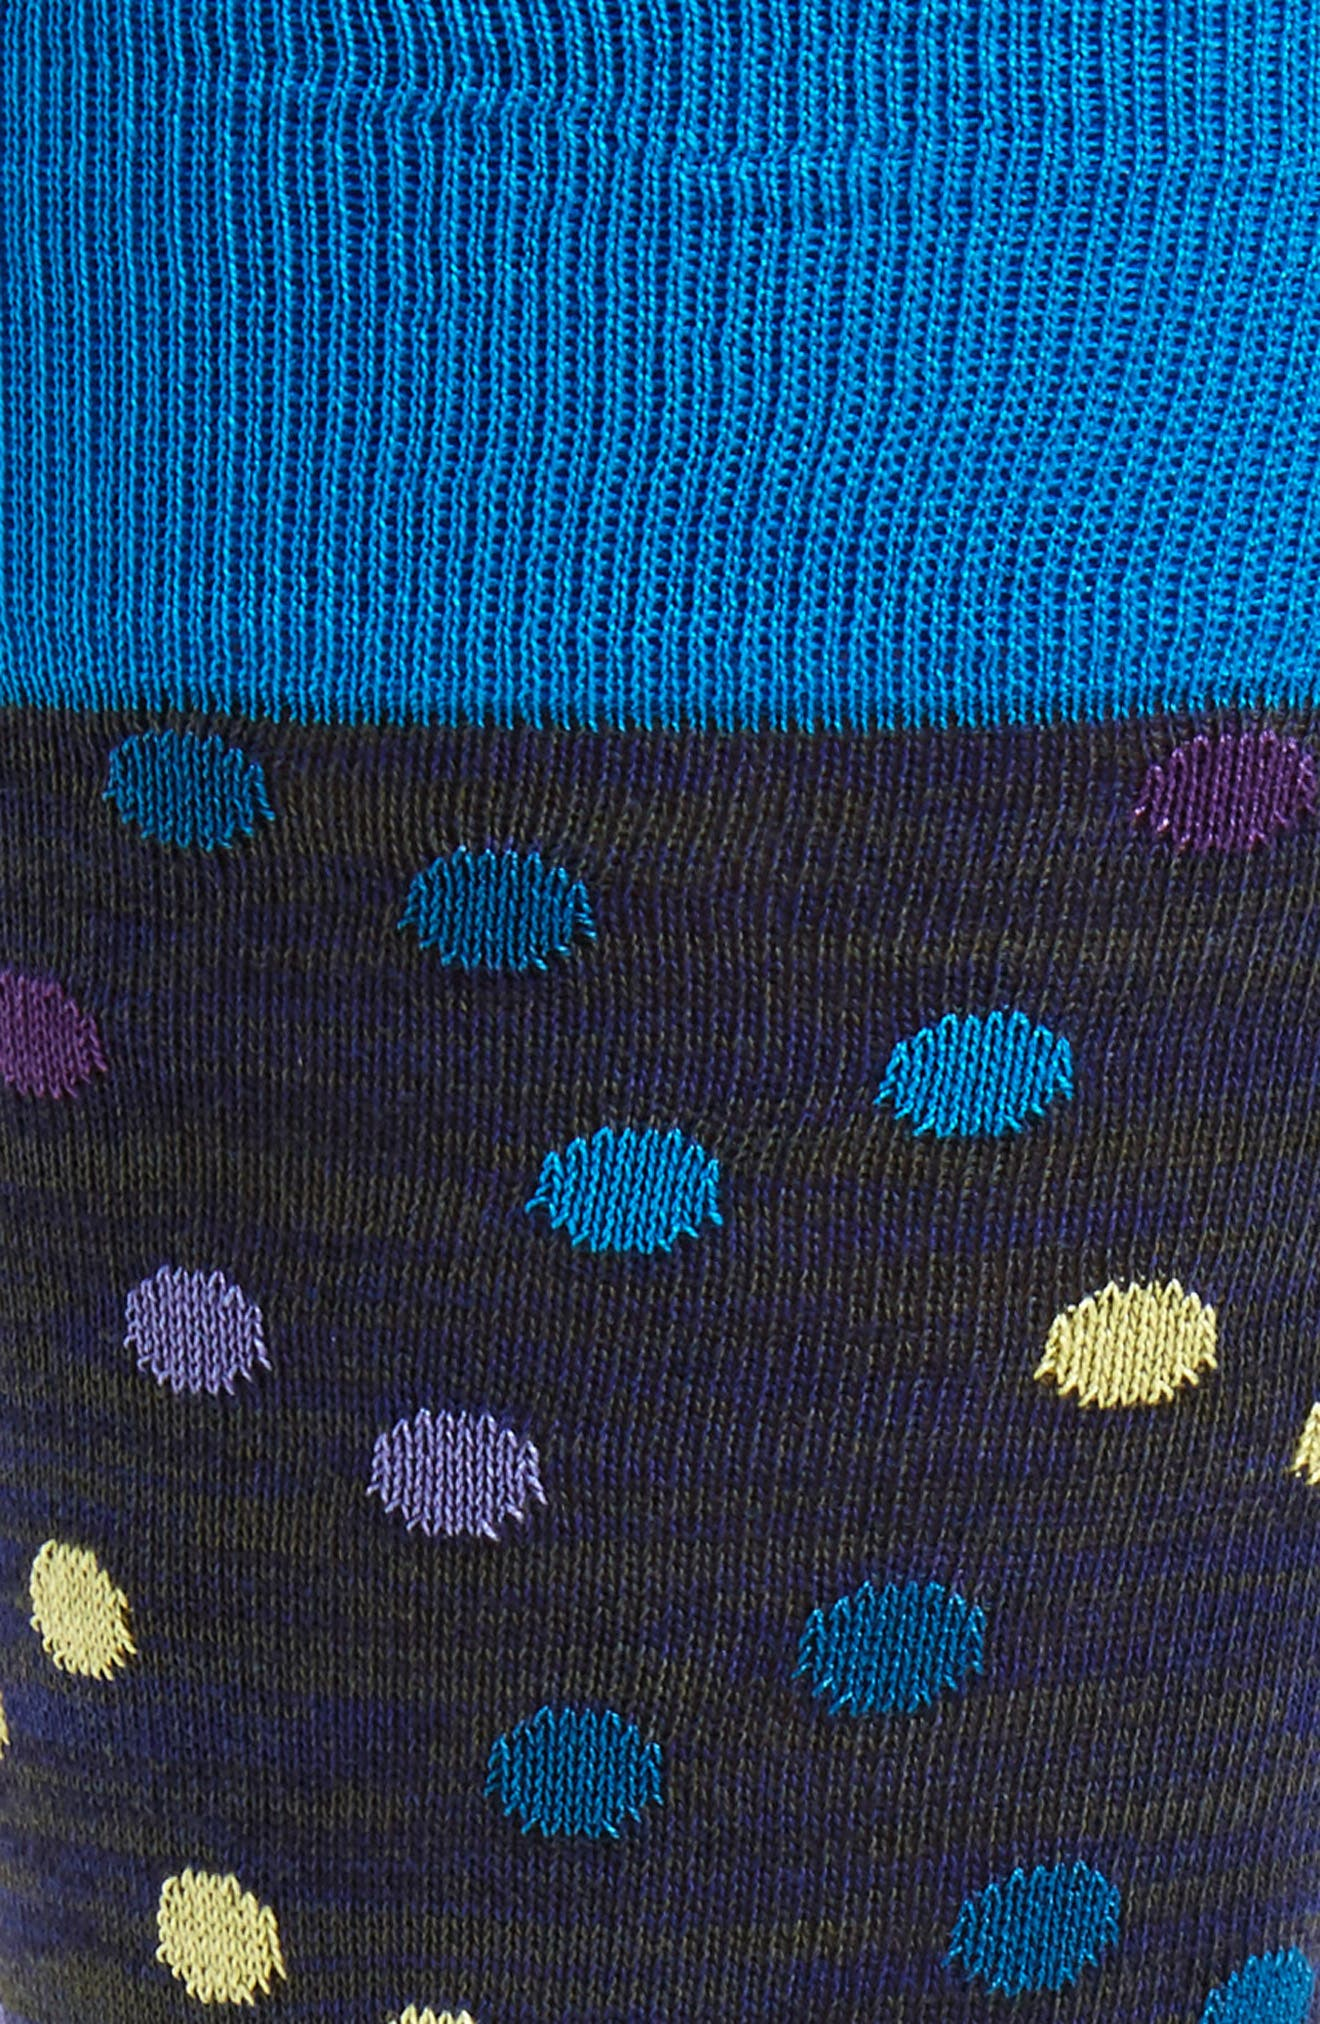 Polka Dot Socks,                             Alternate thumbnail 9, color,